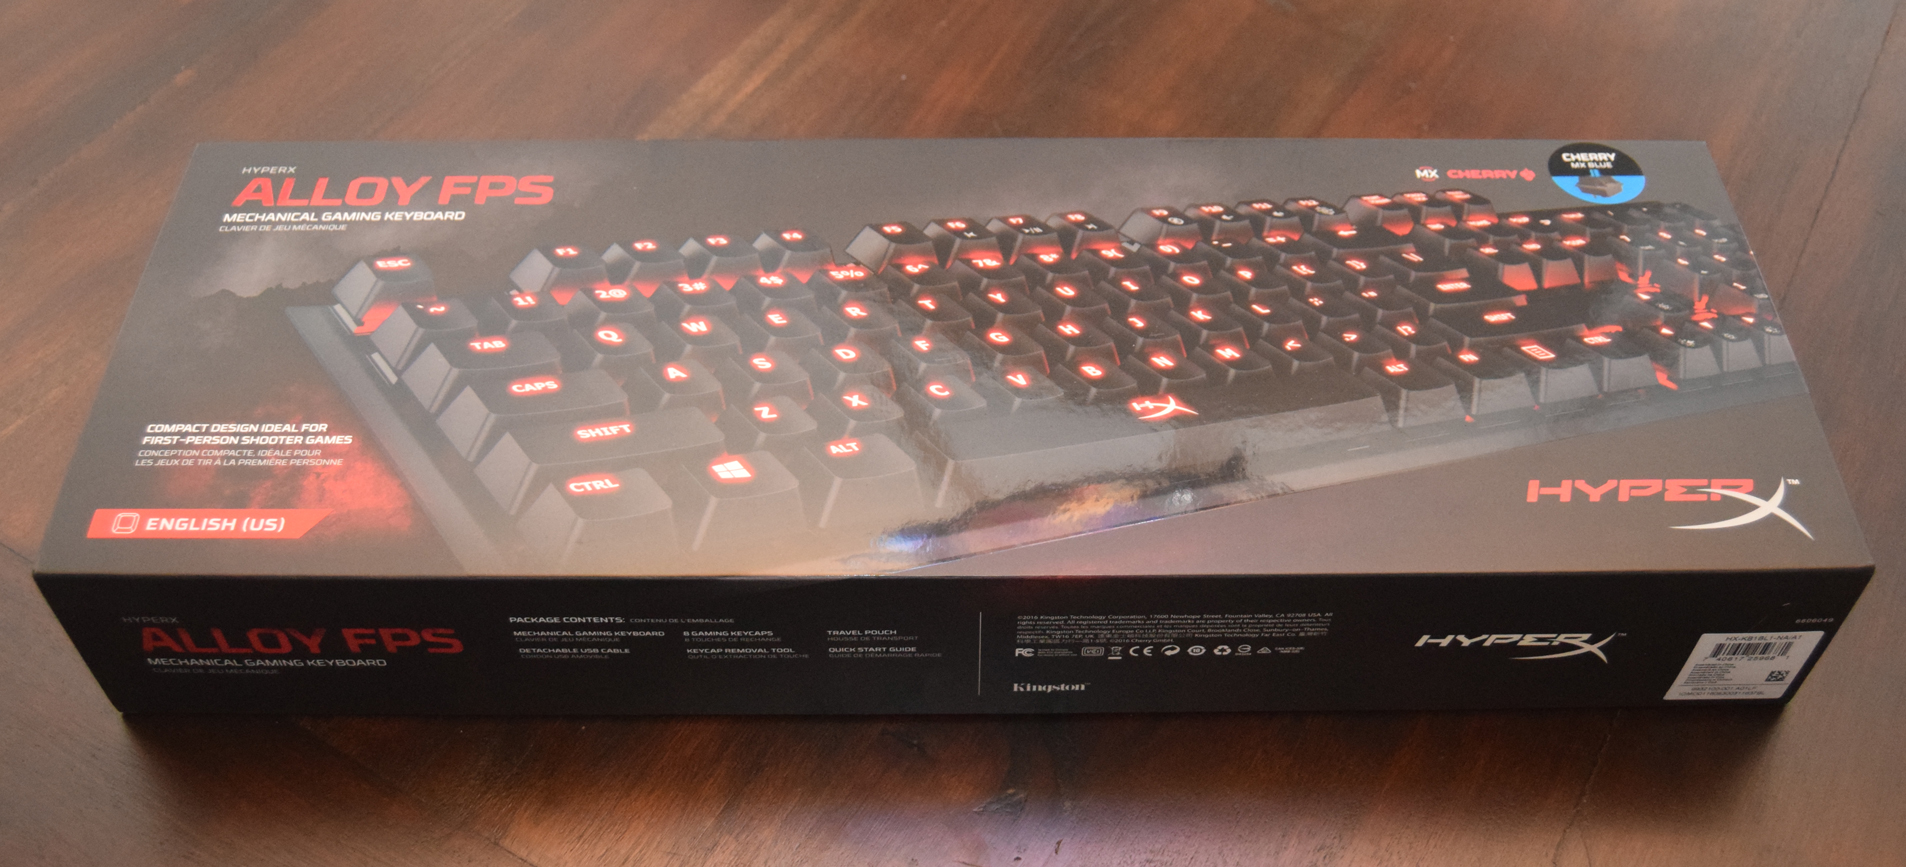 HyperX Alloy FPS Mechanical Gaming Keyboard review box front